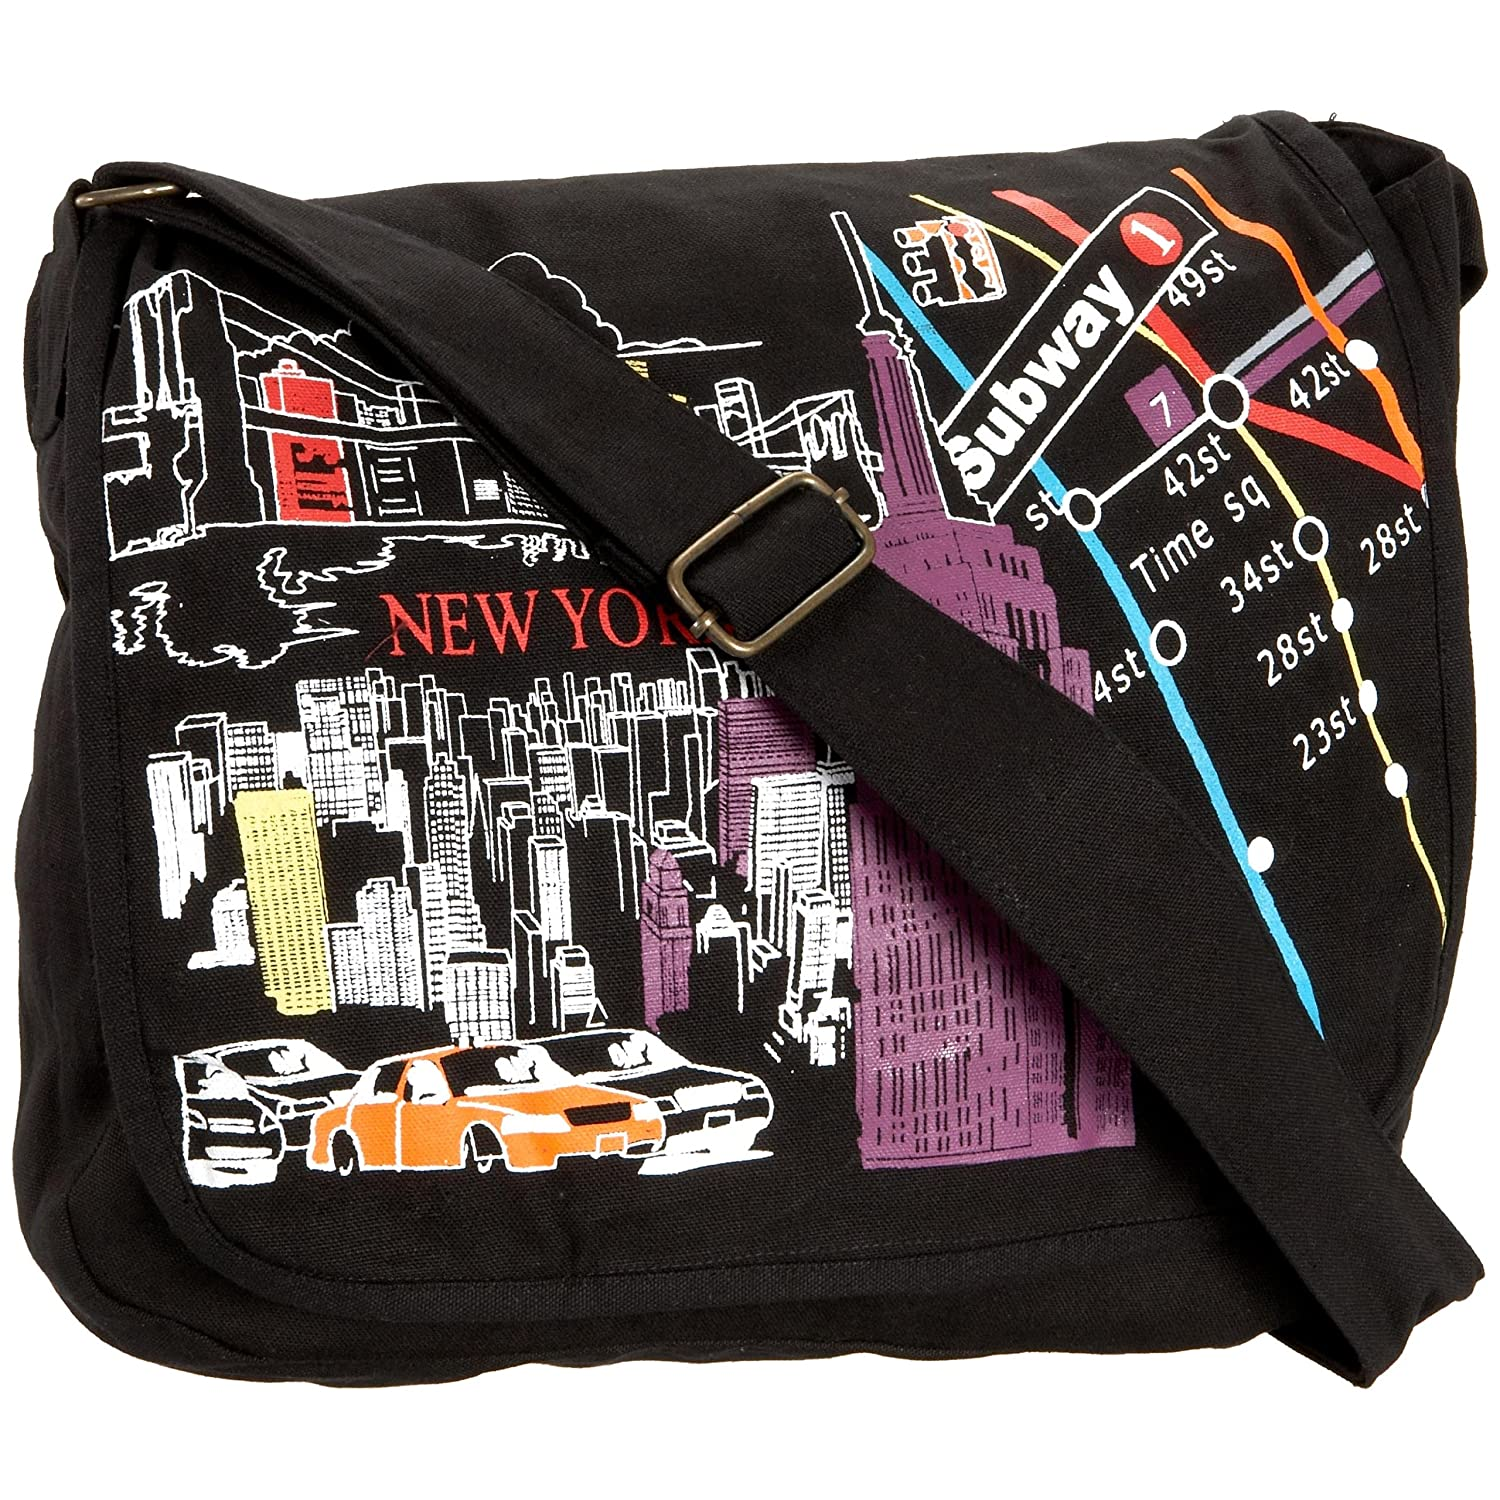 Prezzo NY Scenes Messenger Bag from endless.com